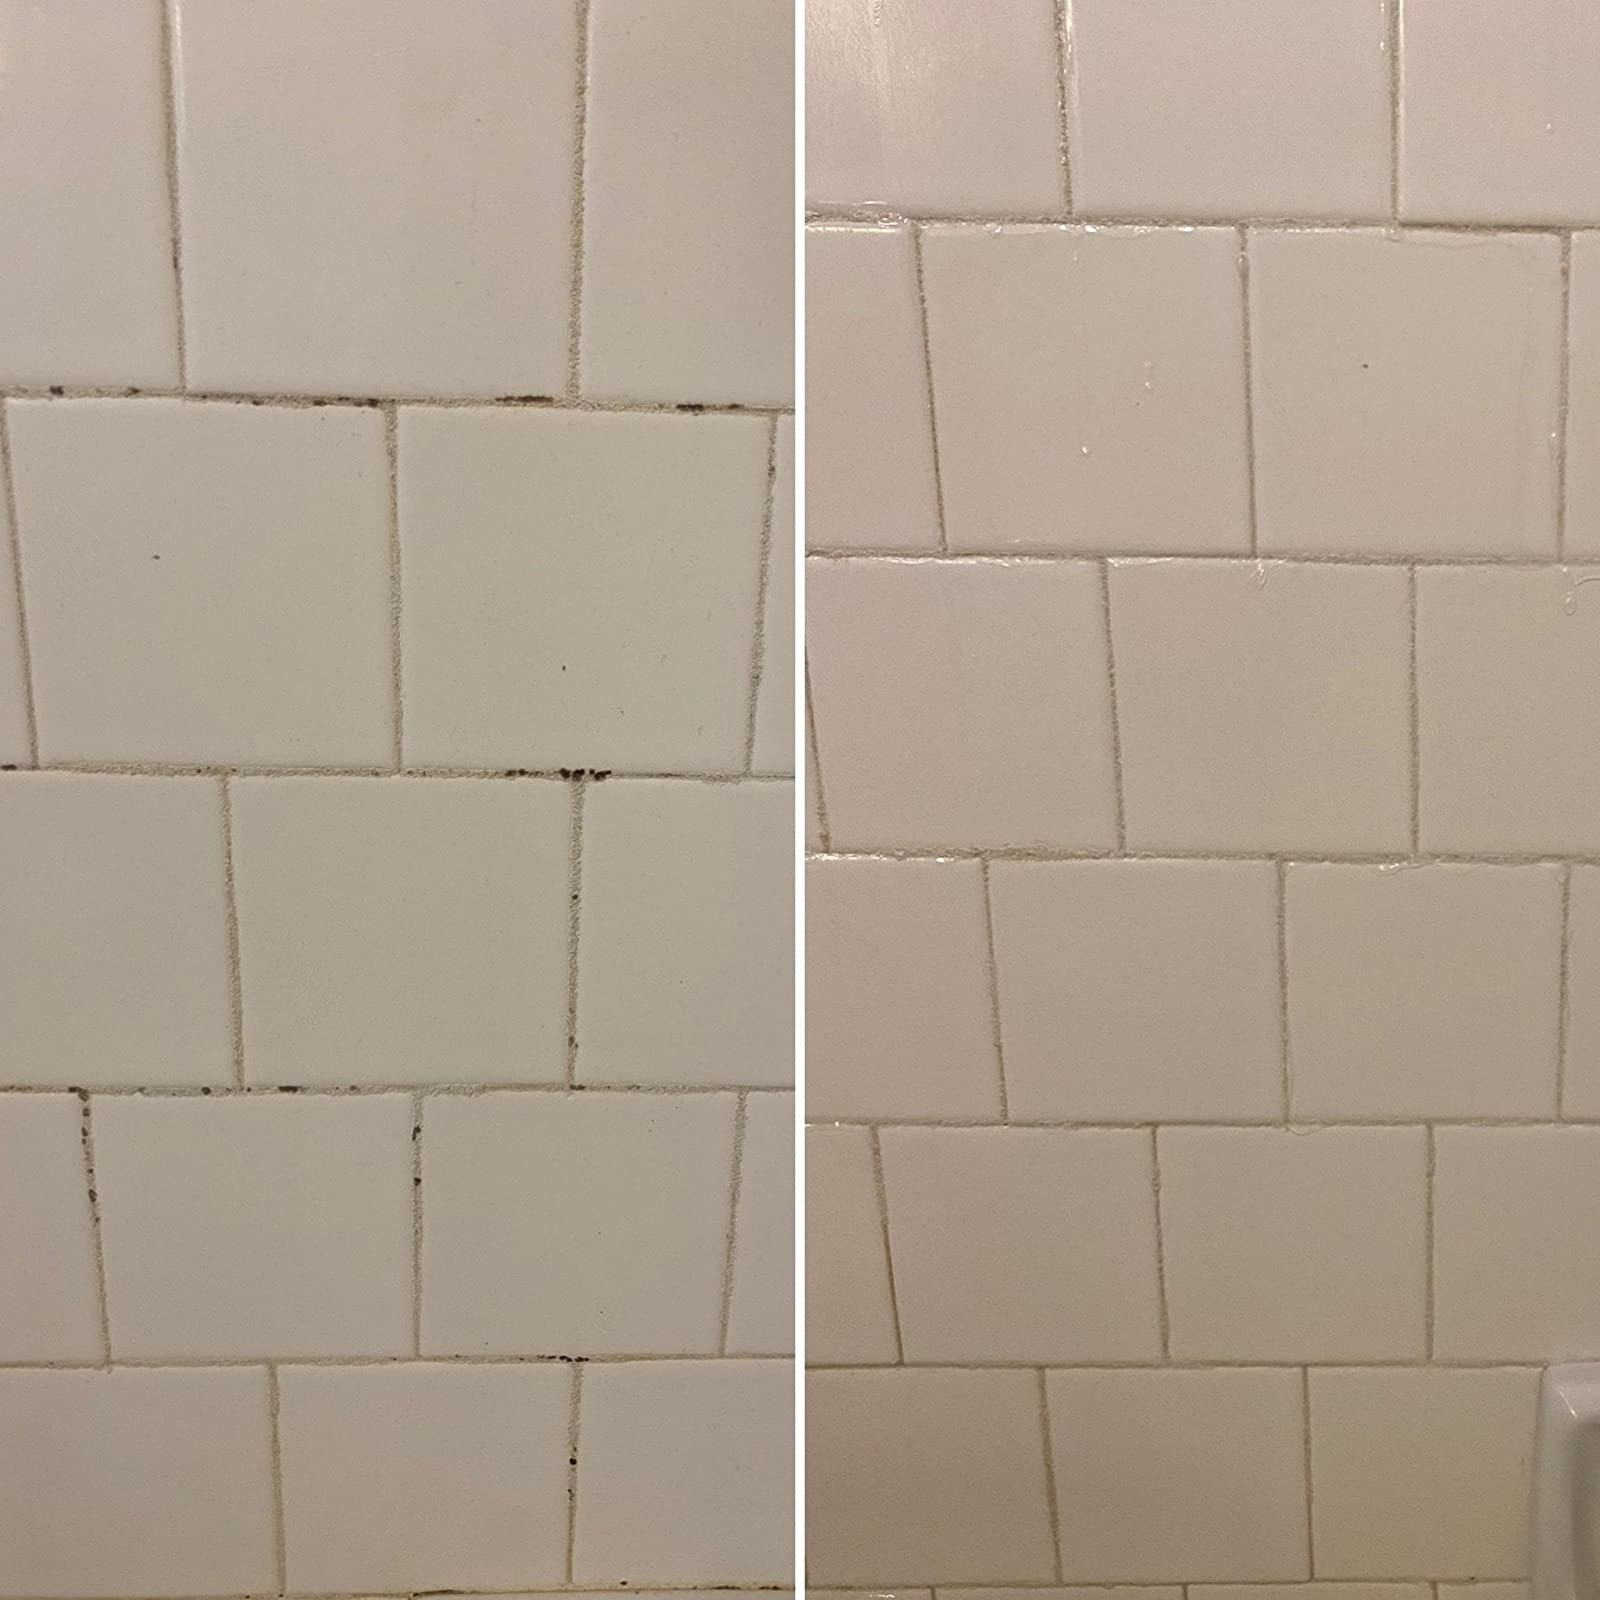 Reviewer before photo of their shower with black stains in their white shower grout next to an after photo showing the stains are totally gone